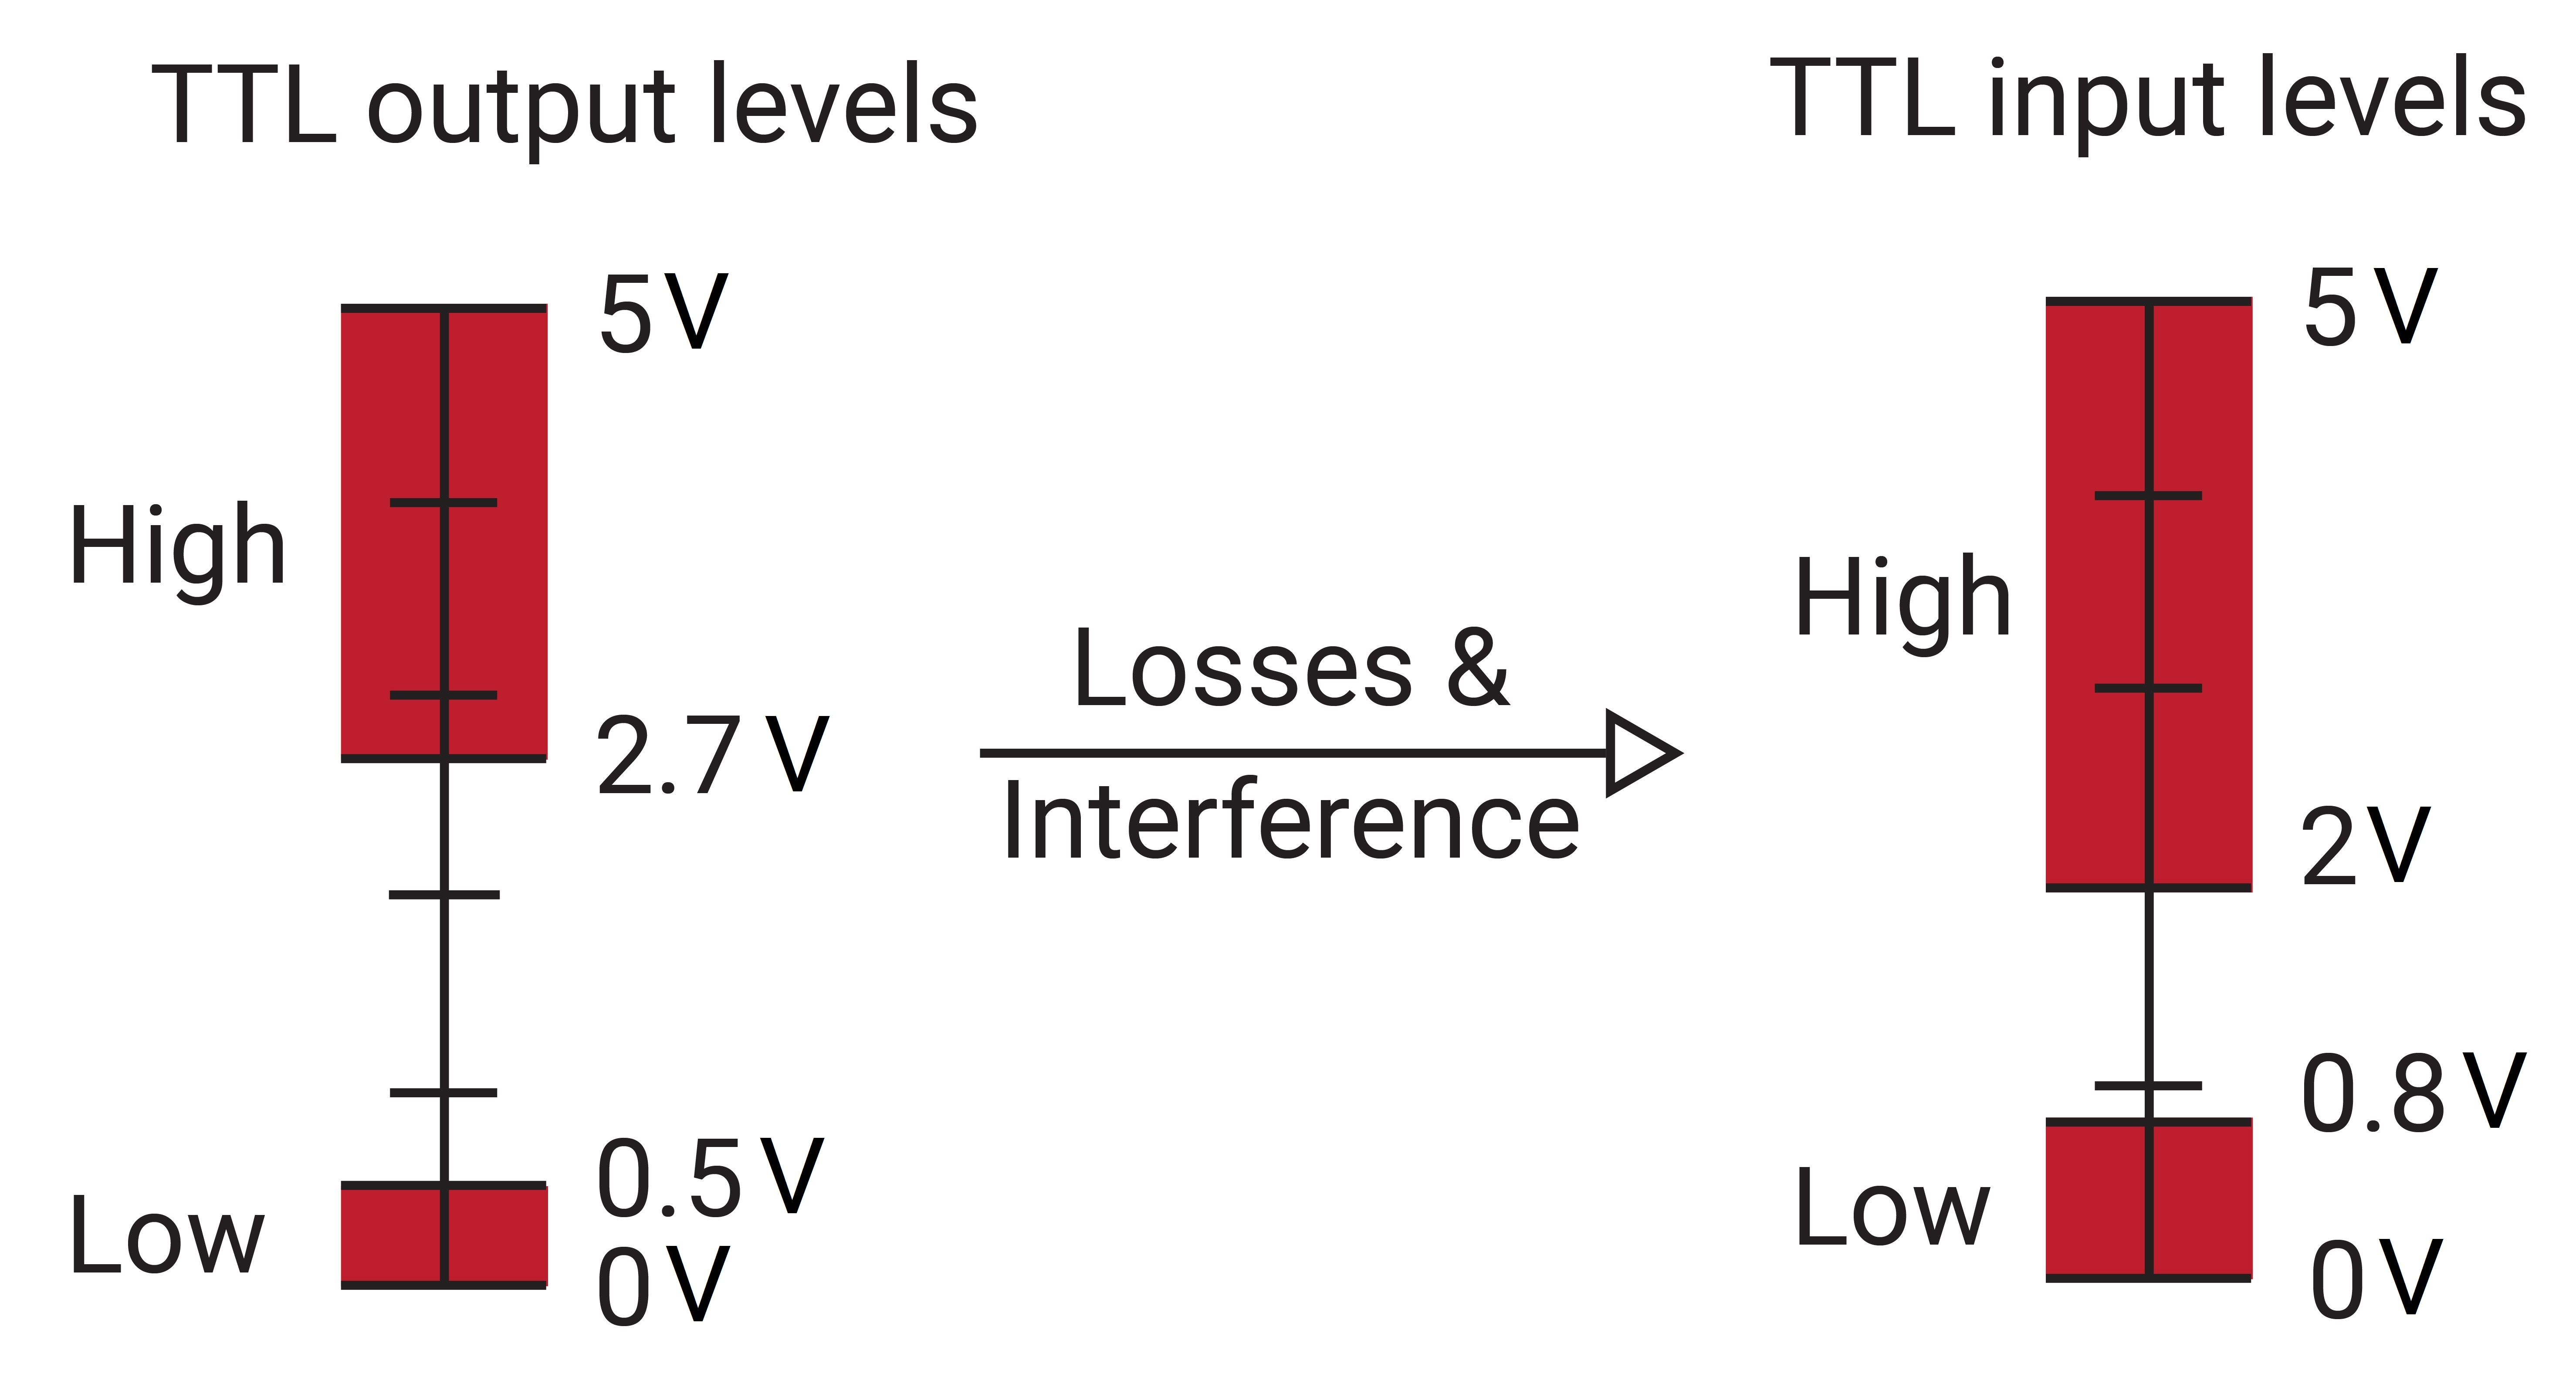 Voltage Levels for TTL Serial